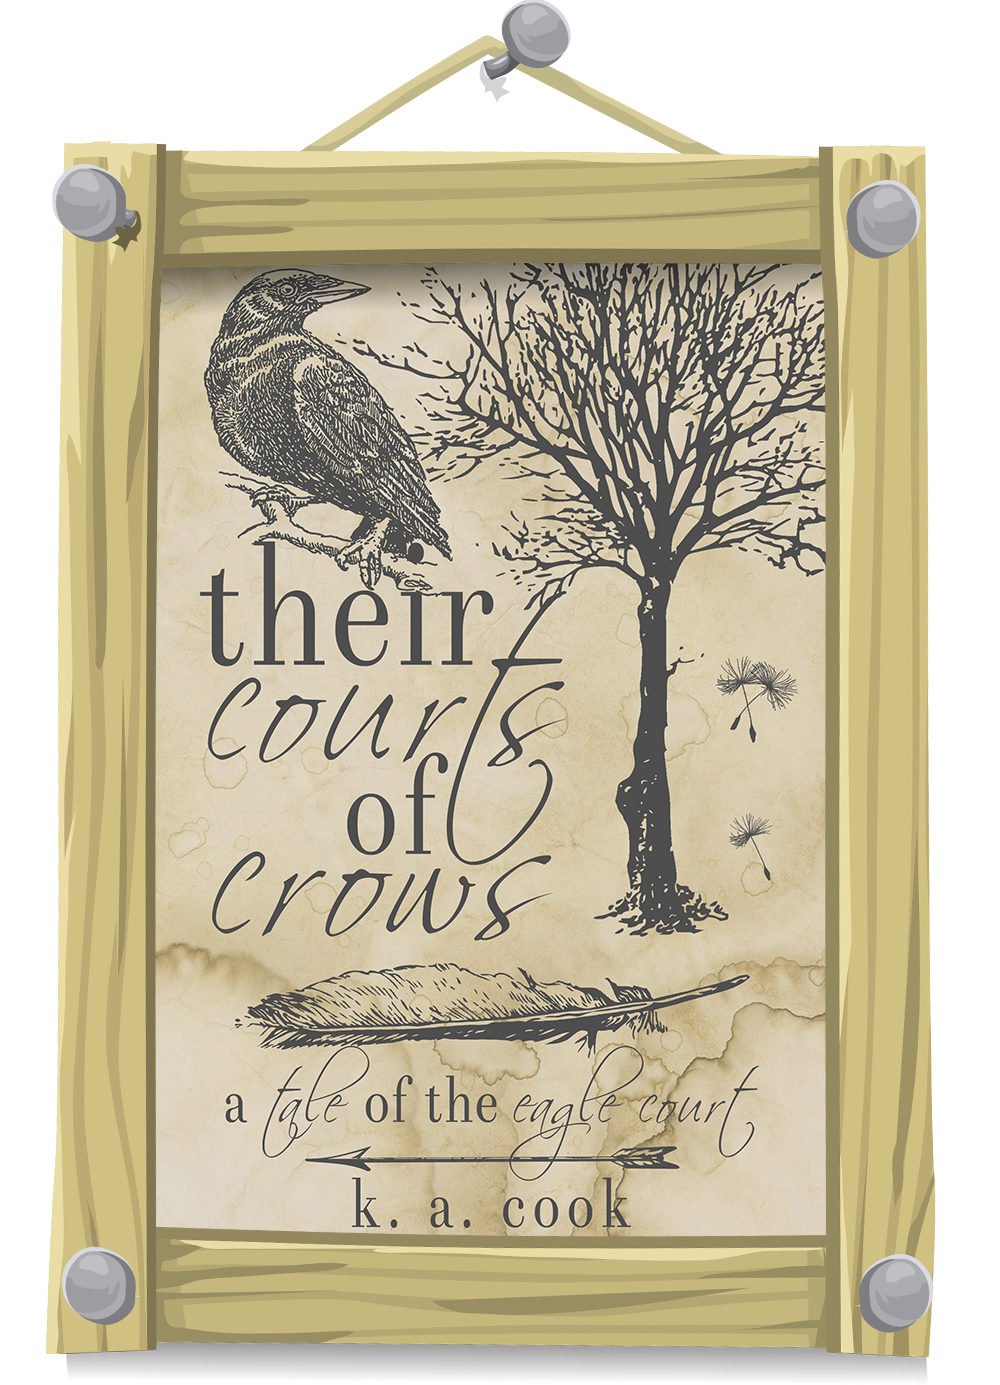 Cover image of Their Courts of Crows by K. A. Cook